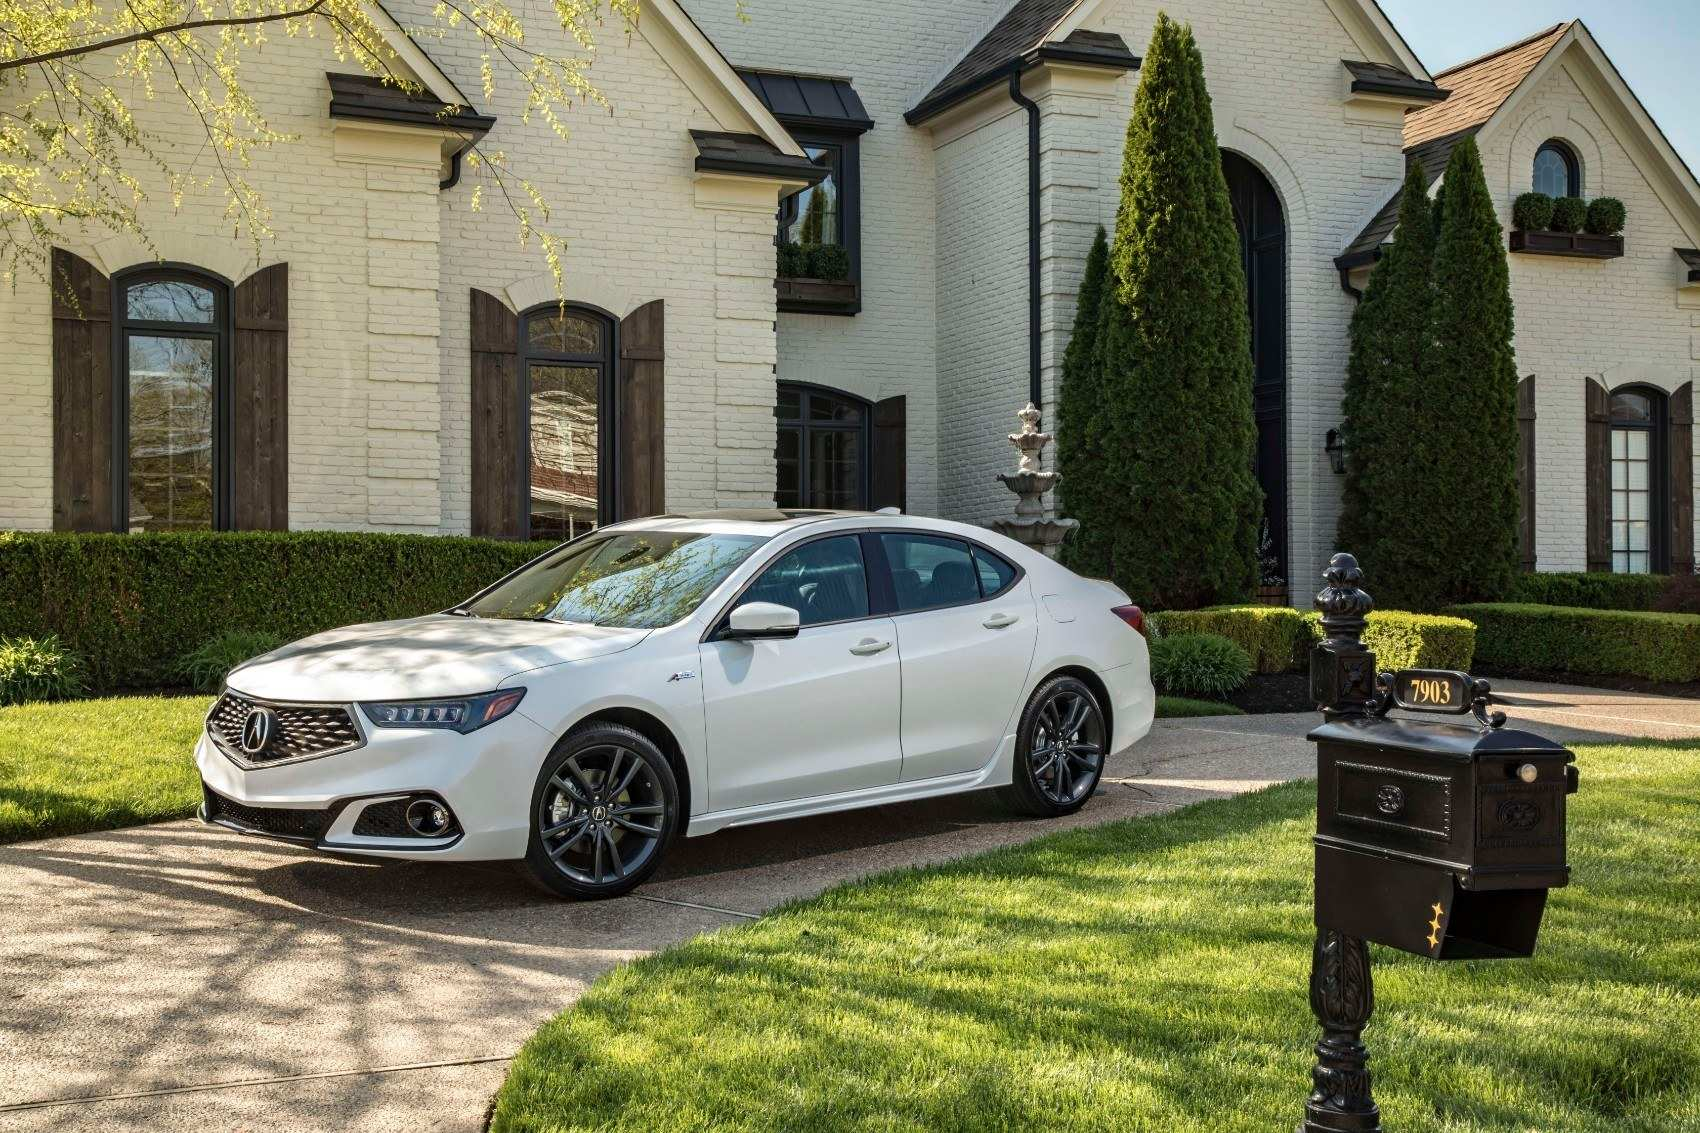 37 Best Review Acura Tlx 2020 Price Engine by Acura Tlx 2020 Price